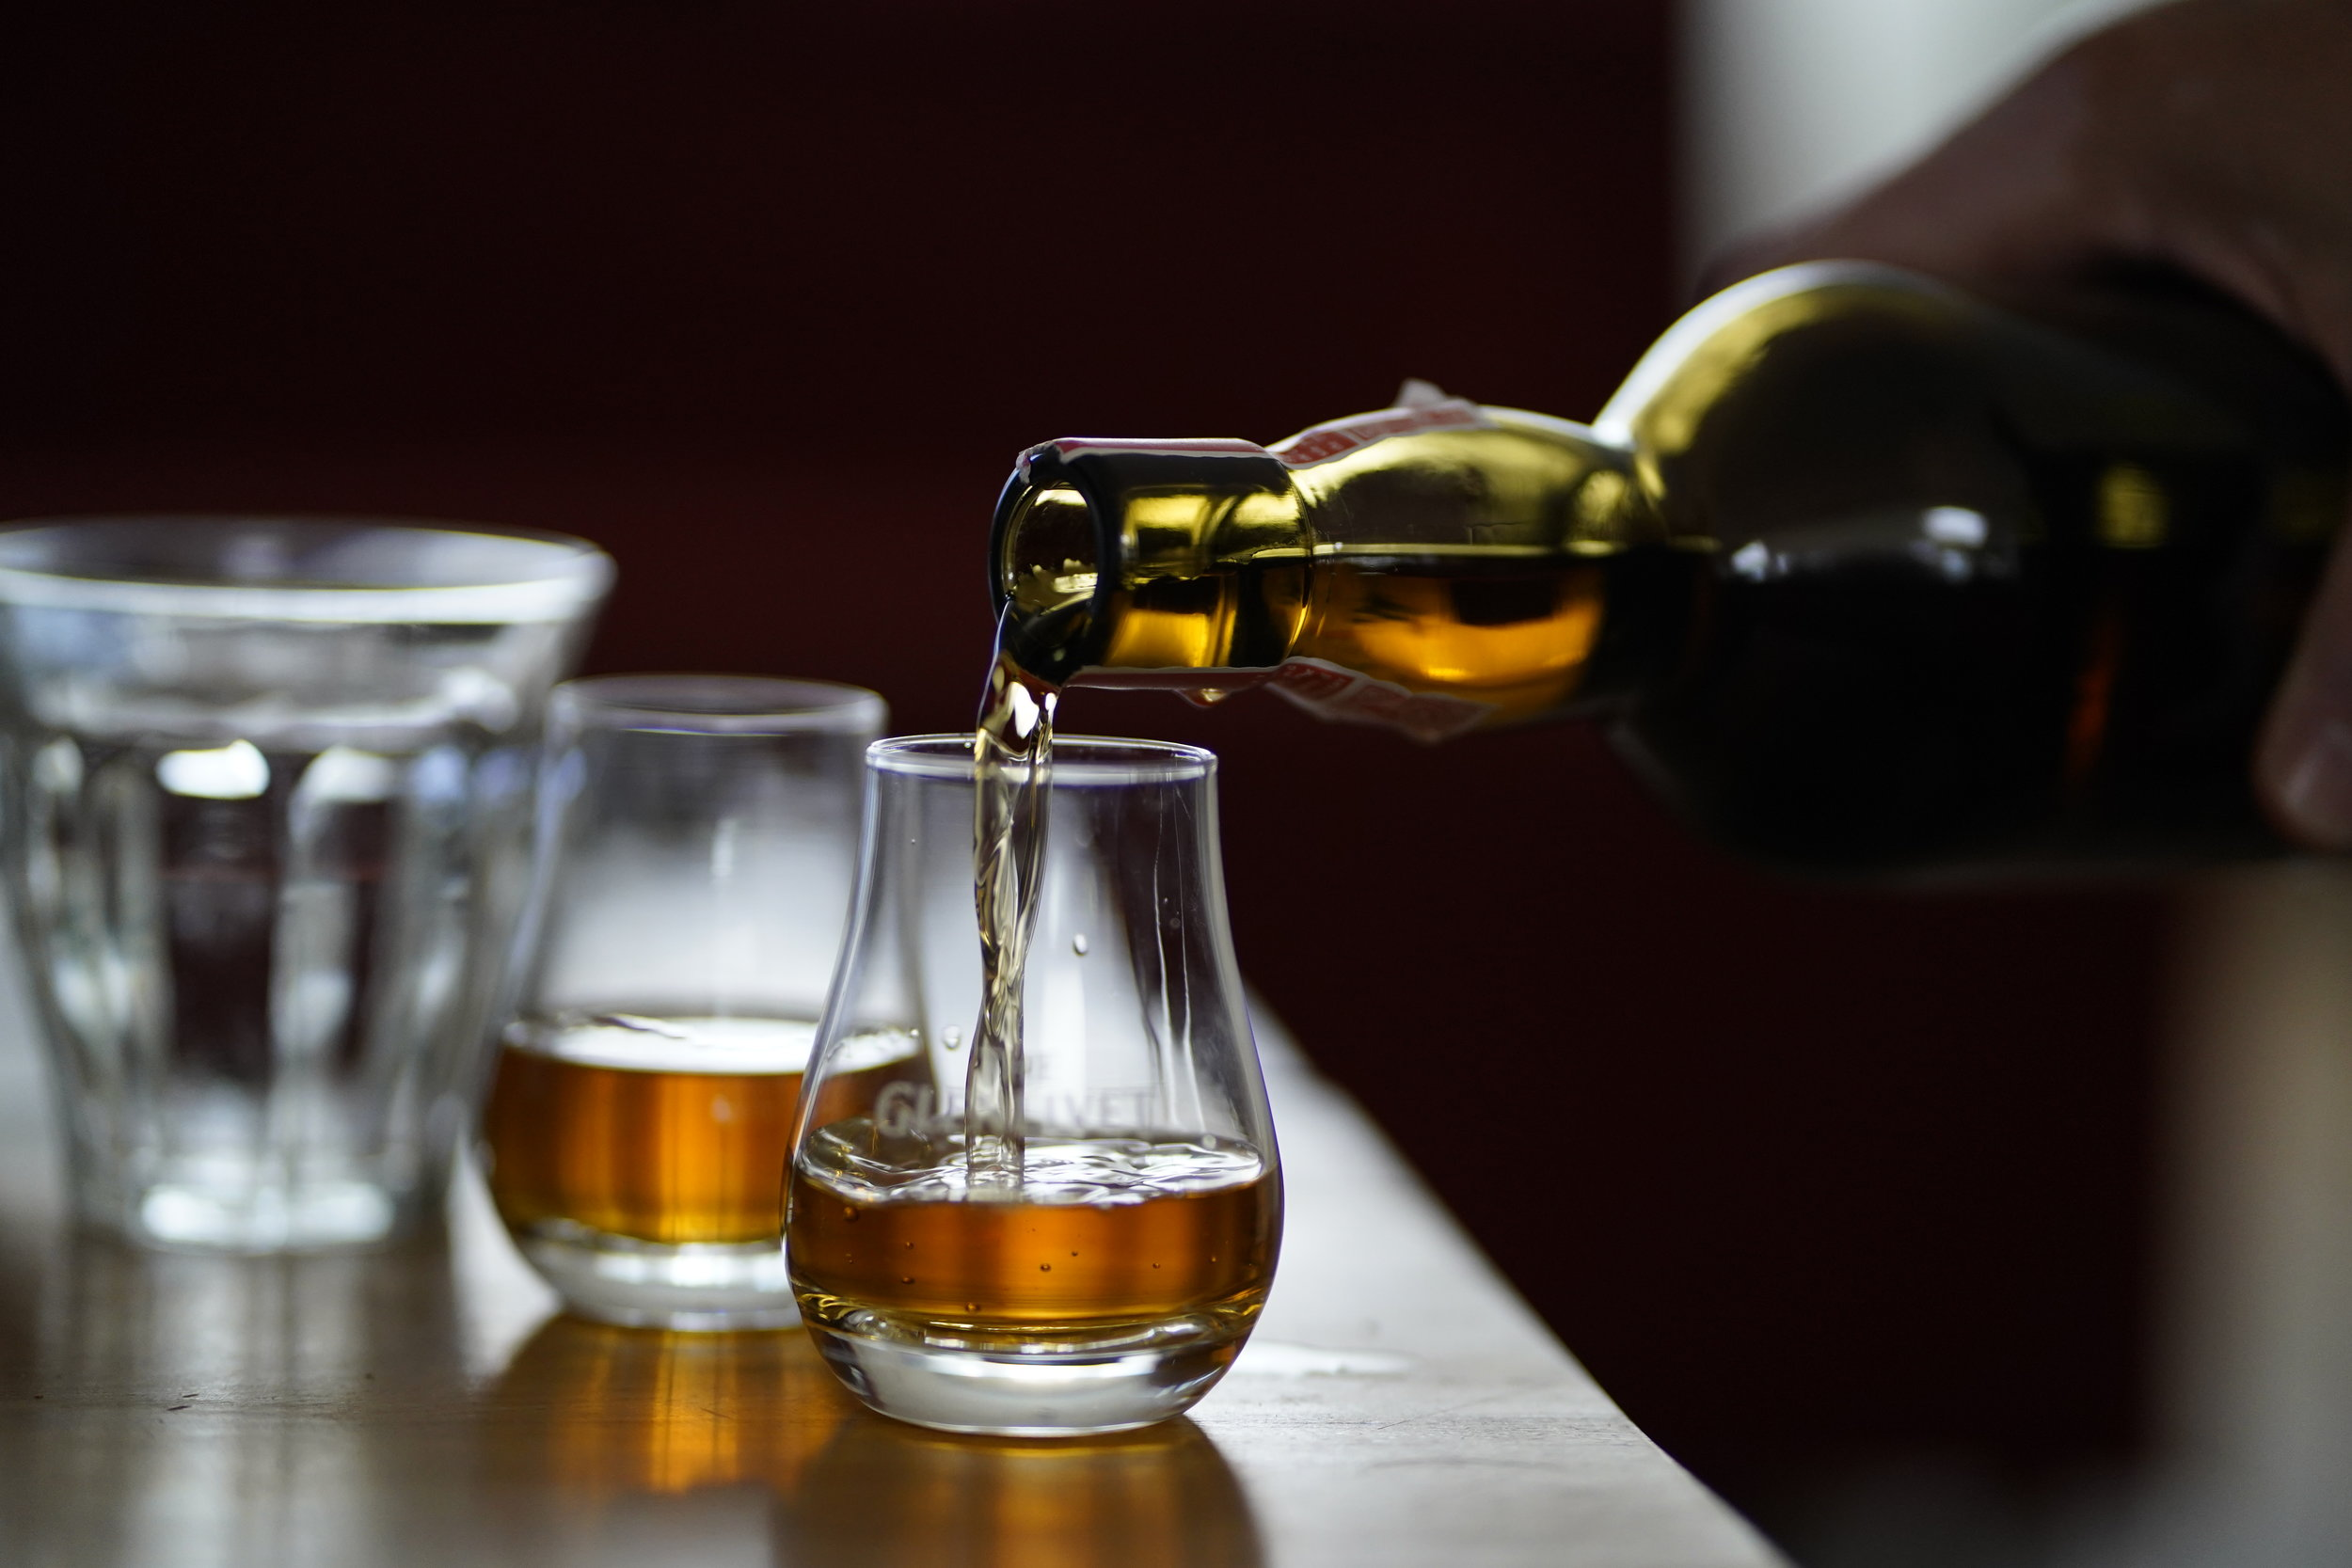 TASTING BARS - whiskey, scotch, tequila or beer tasting barsstarting at $21 per person